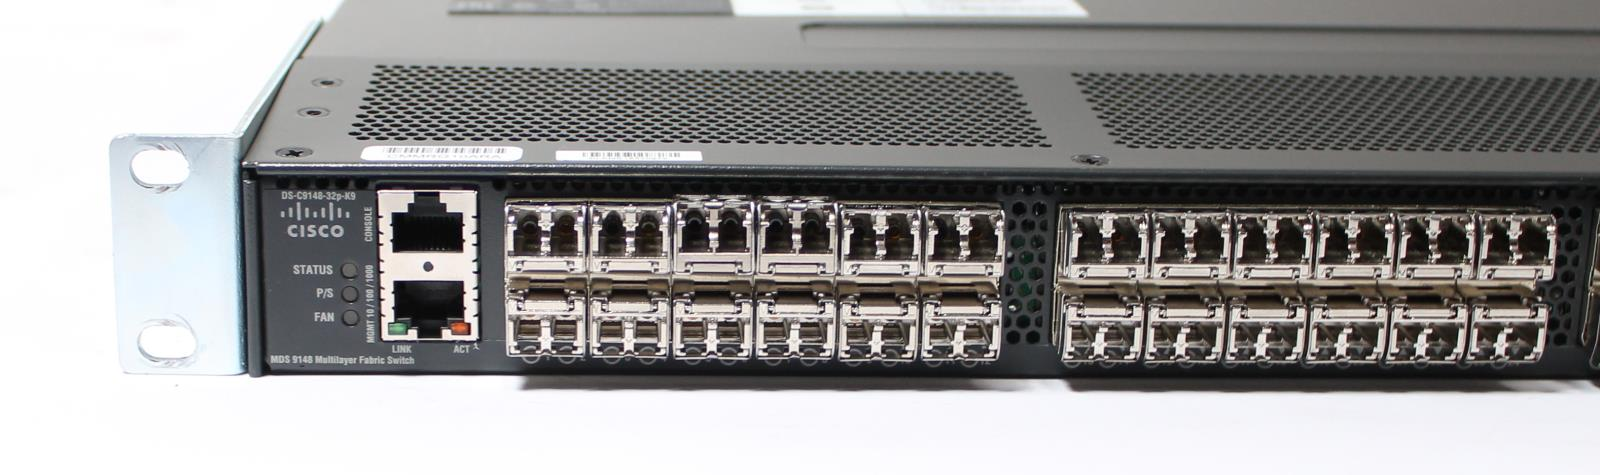 ... Cisco MDS 9148 Multilayer Fabric Switch DS-C9148-32P-K9 32 Active Ports  ...